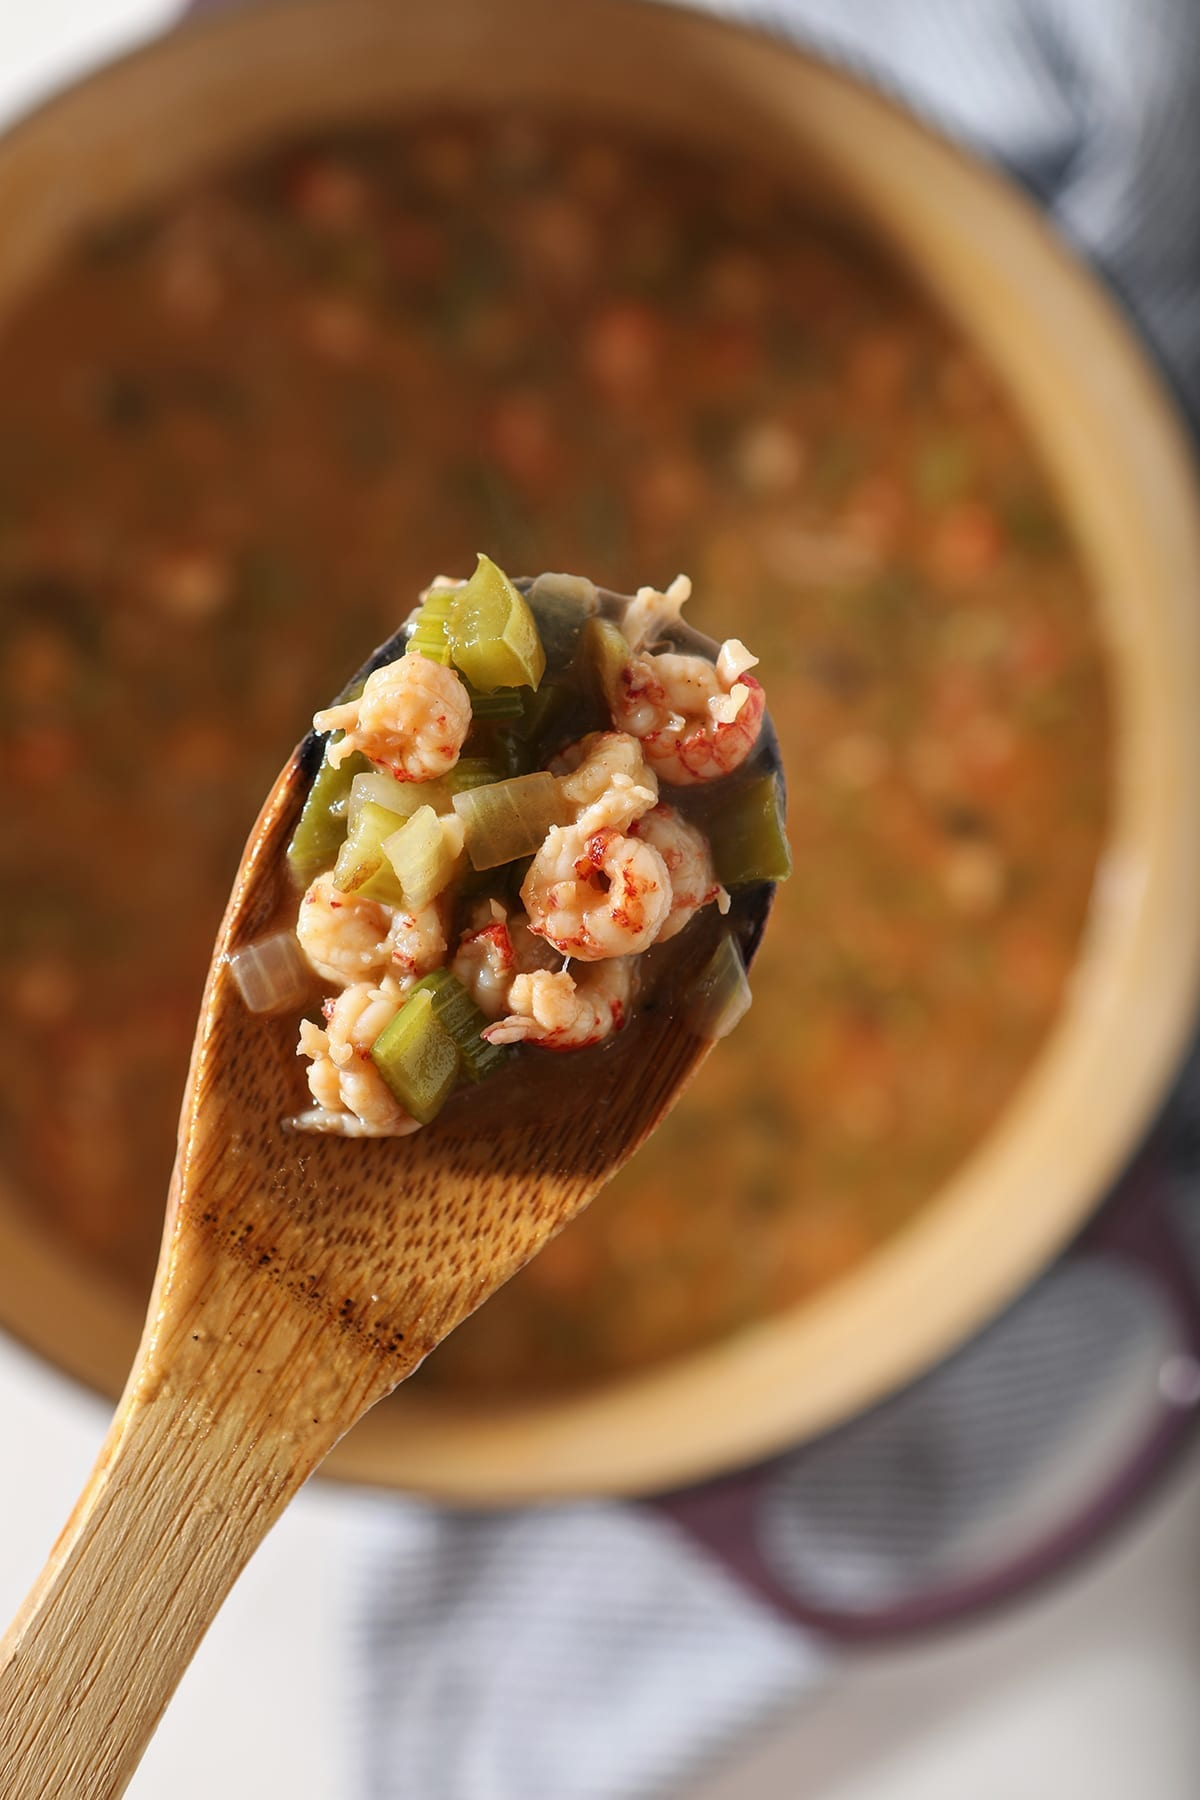 A wooden spoon holds crawfish tails and other etouffee ingredients